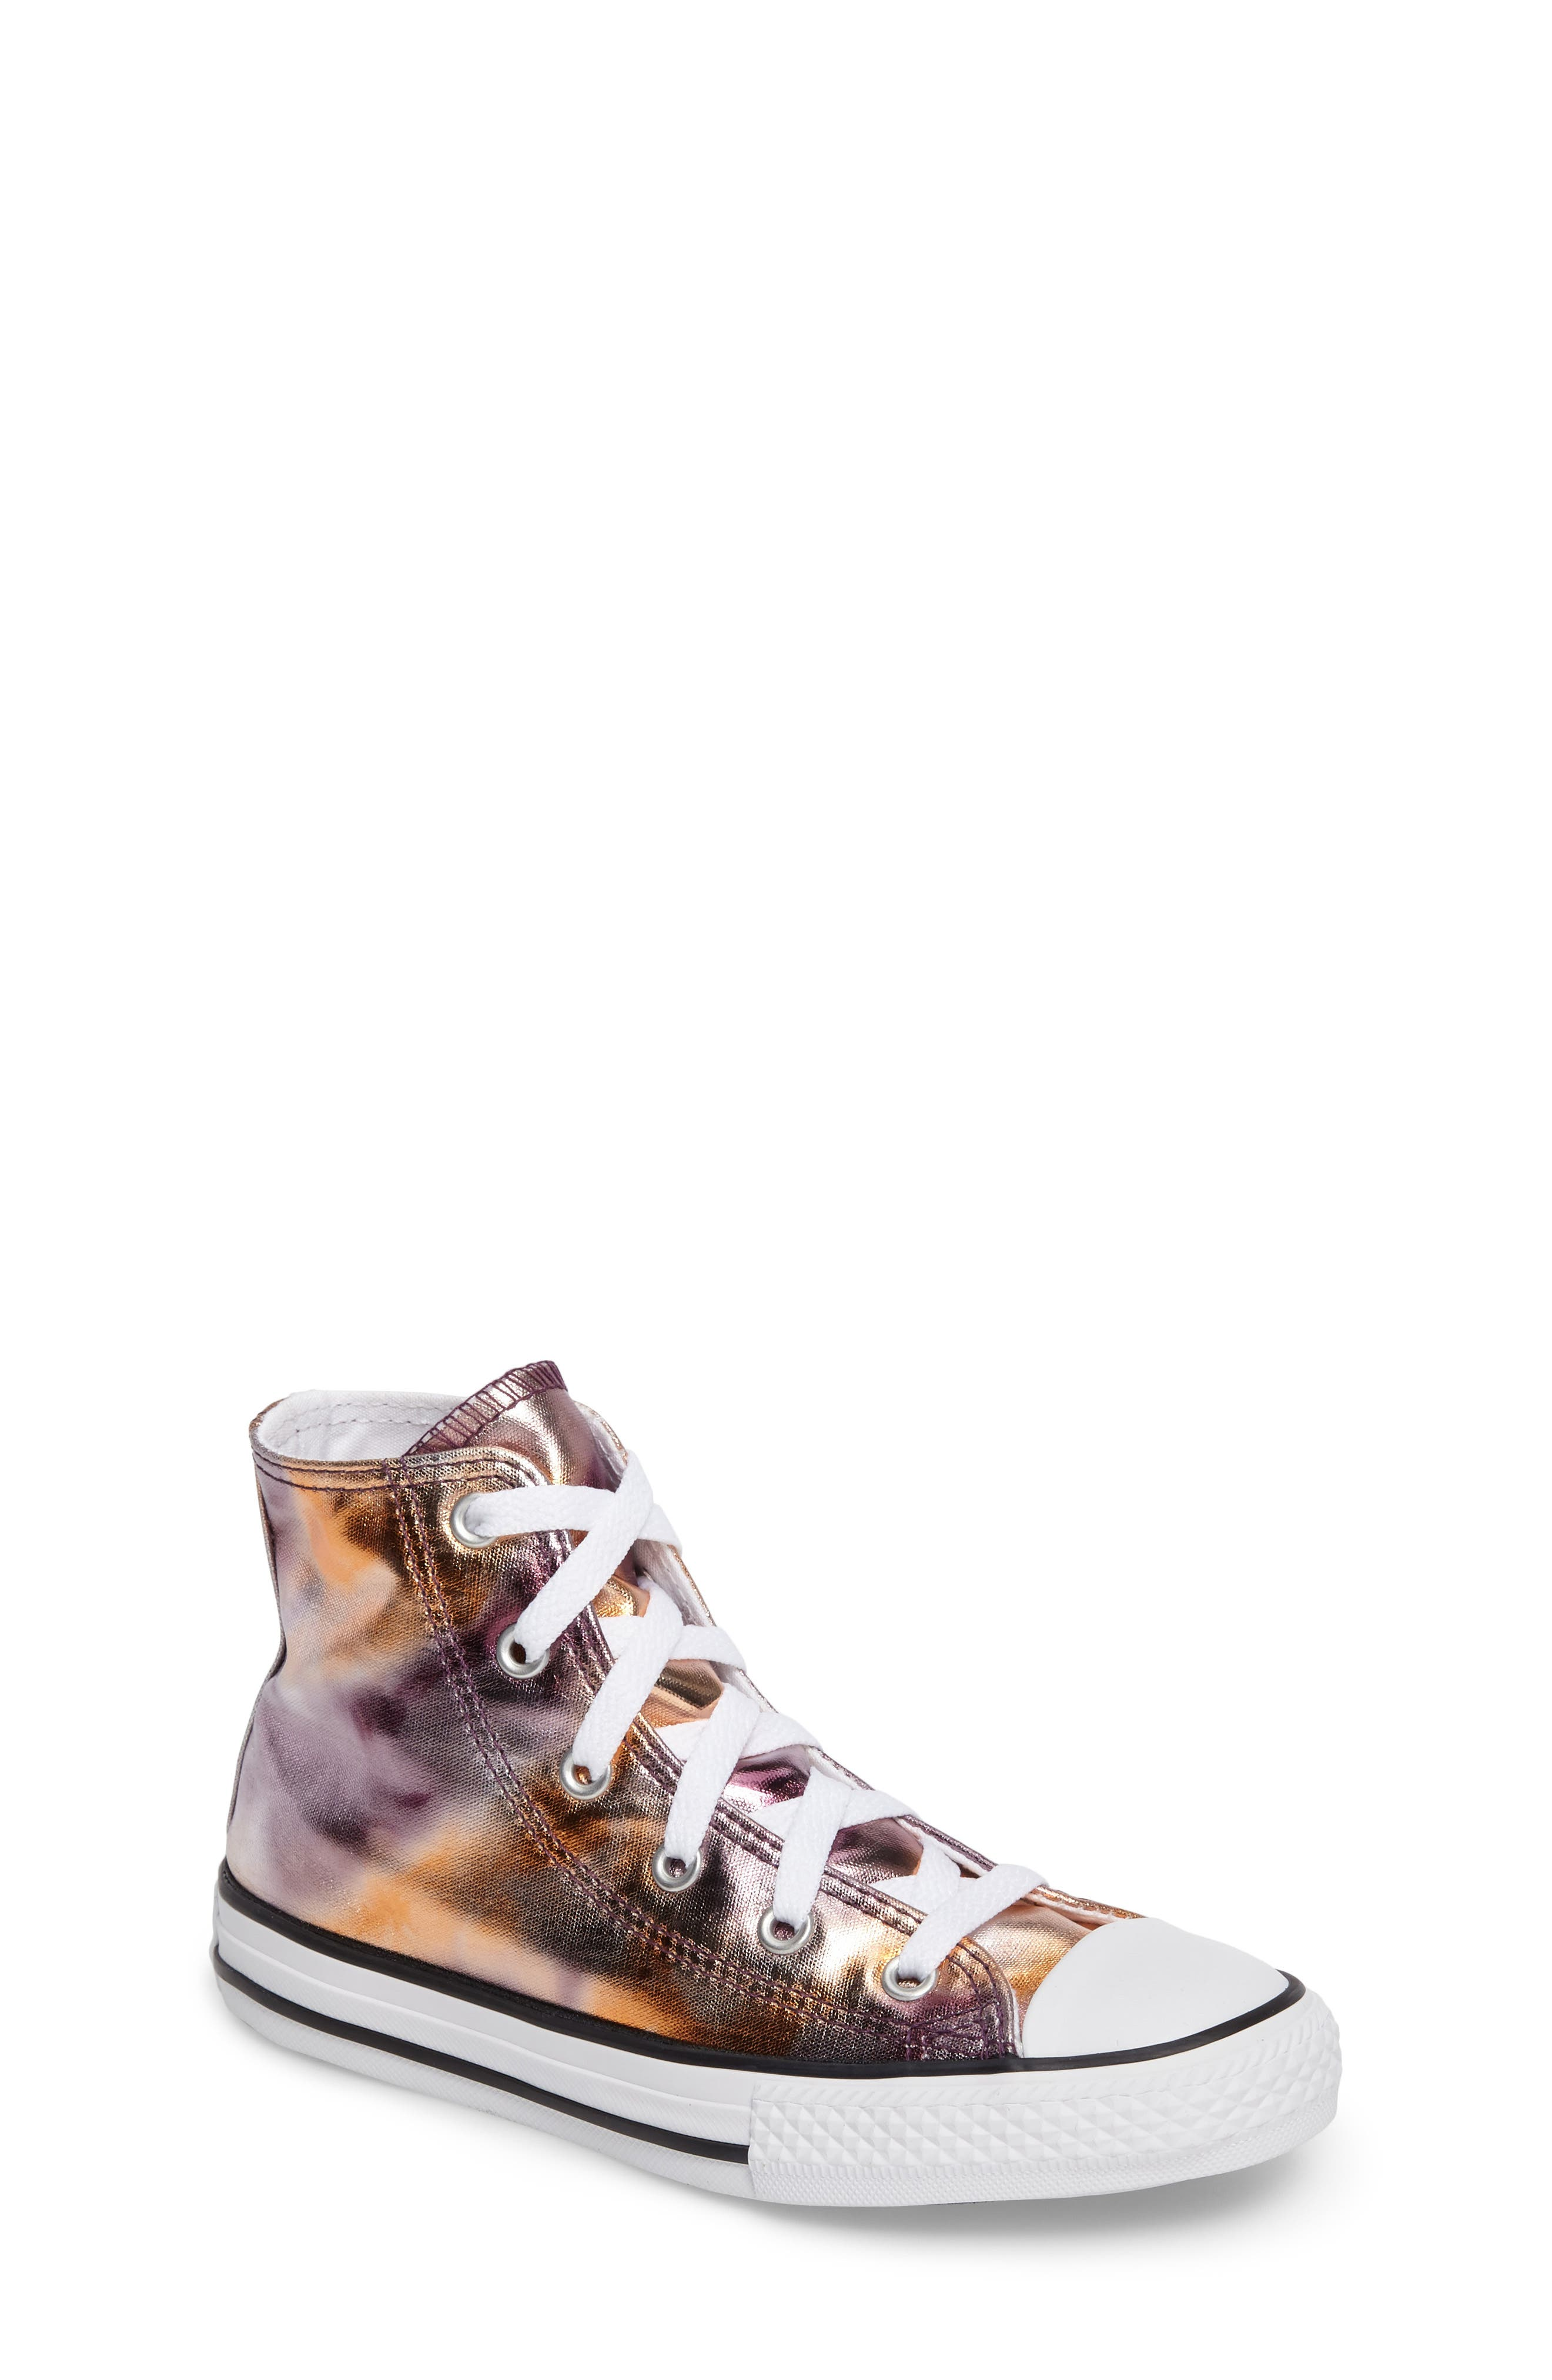 Chuck Taylor<sup>®</sup> All Star<sup>®</sup> Metallic High Top Sneaker,                         Main,                         color, Dusk Pink Coated Canvas